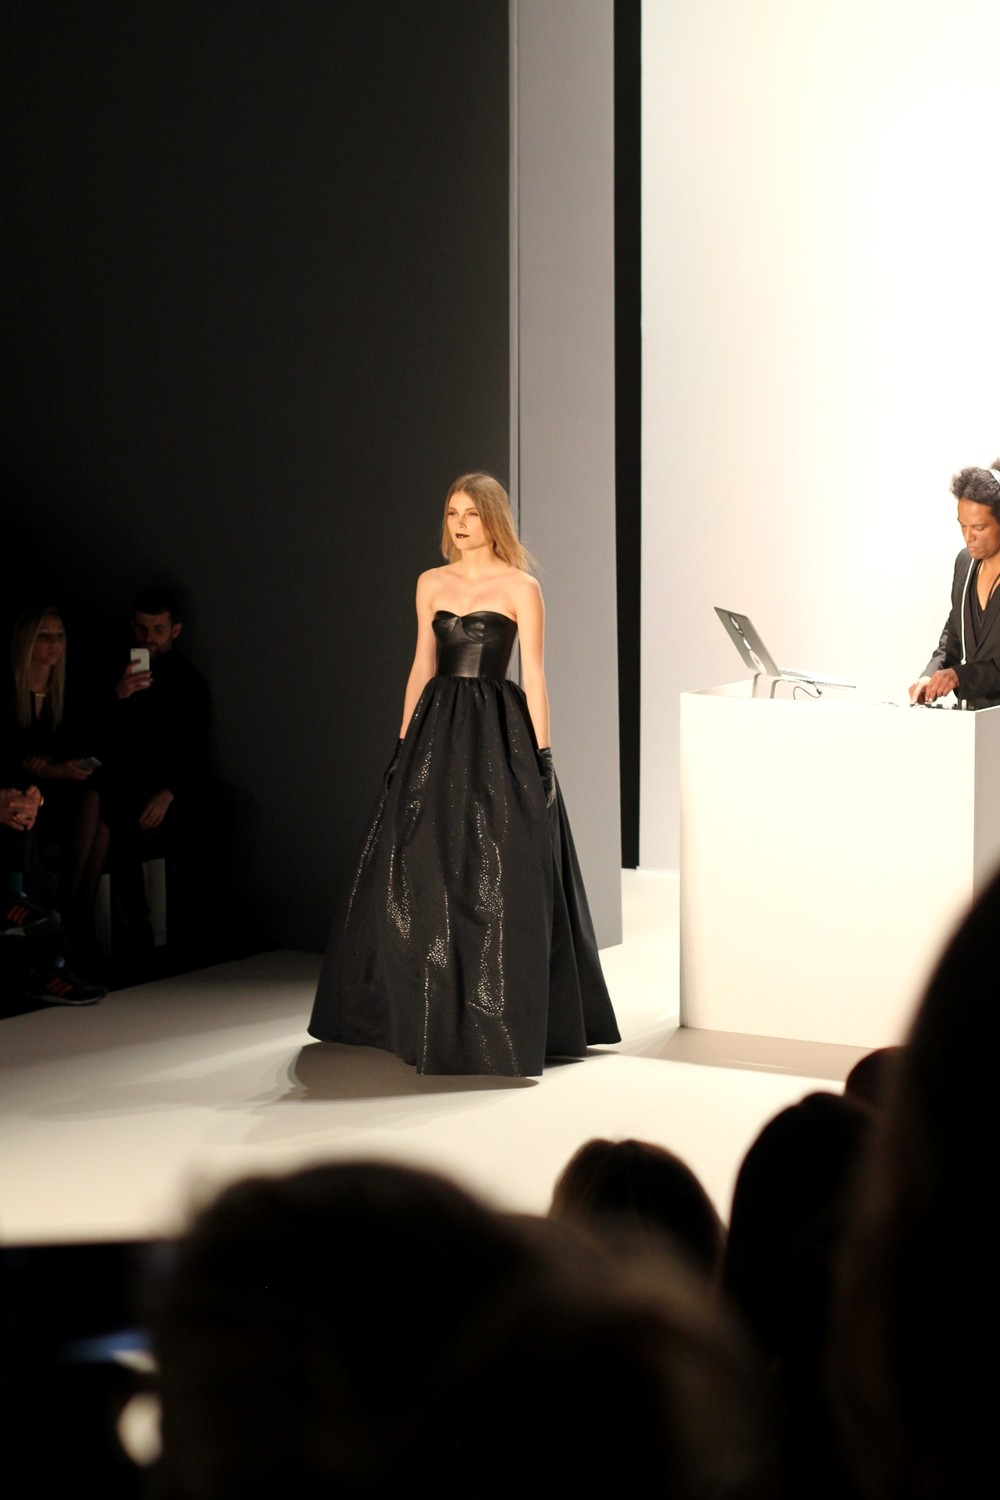 Tulpen Design Runway Fashion Week Januar 2016 AW langes Kleid schwarz